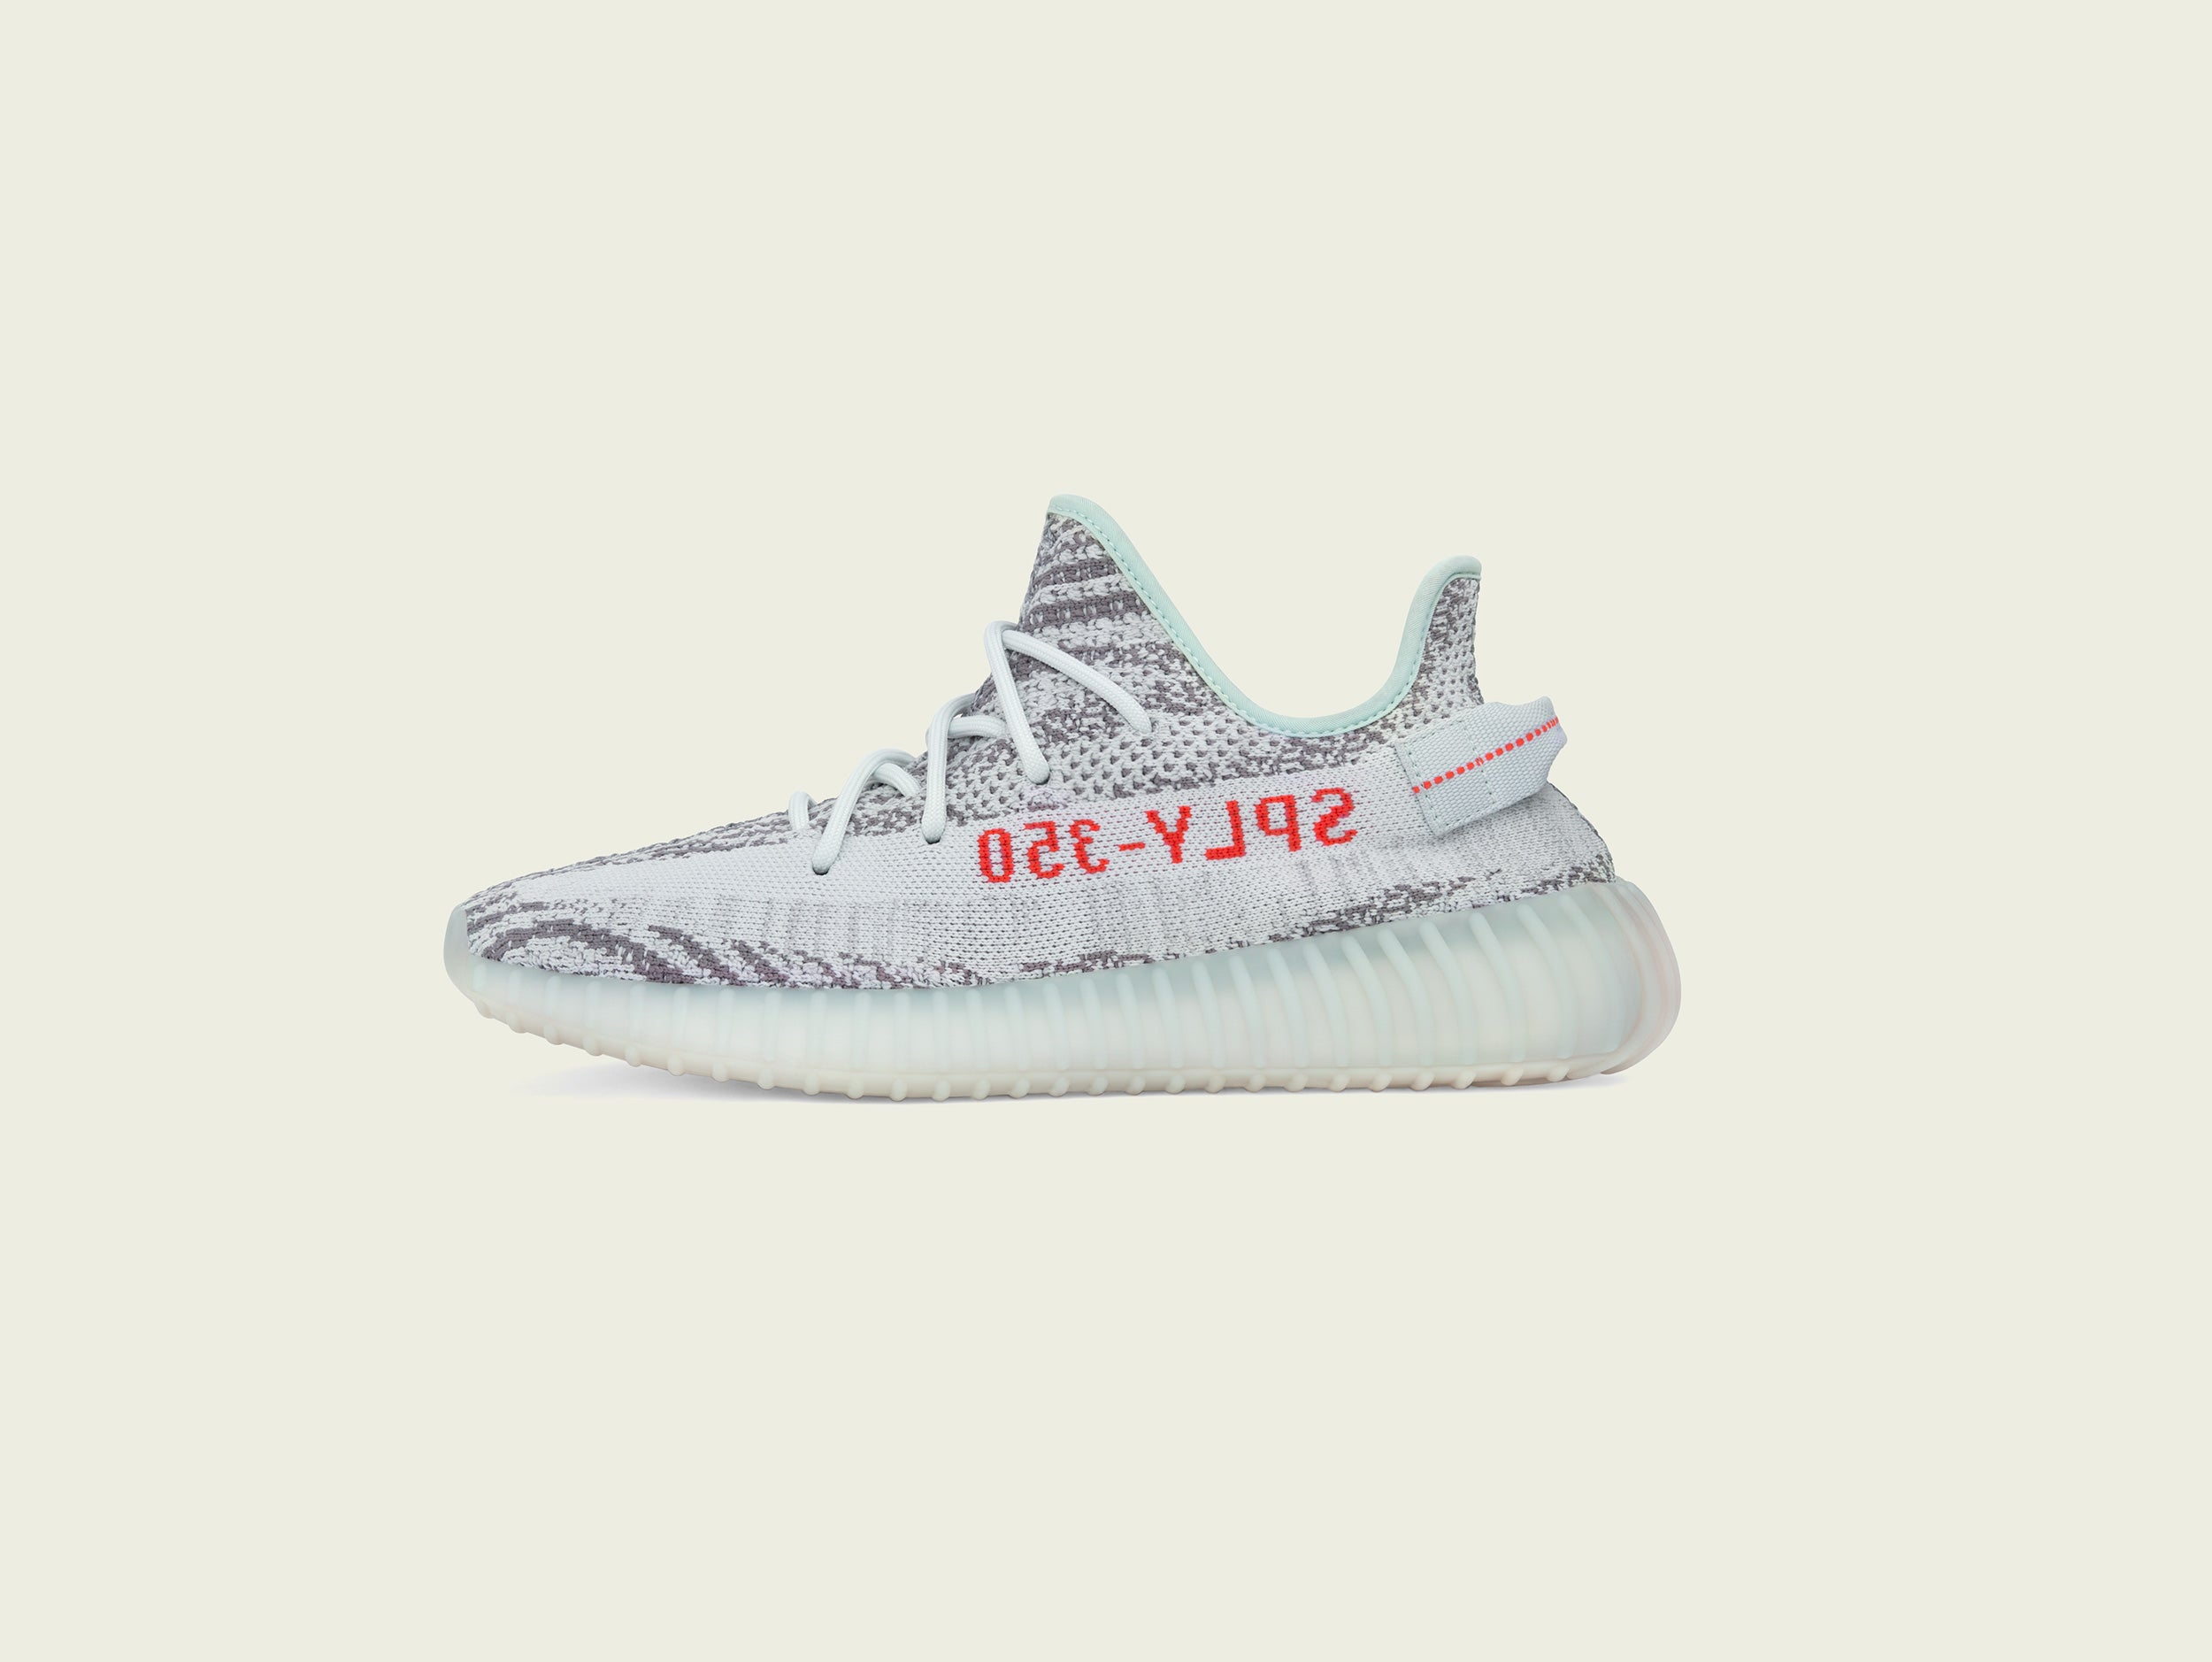 8ecf0e23dec0a Extra Butter - Adidas Yeezy Boost V2 Blue Tint - In-store Raffle + Ins